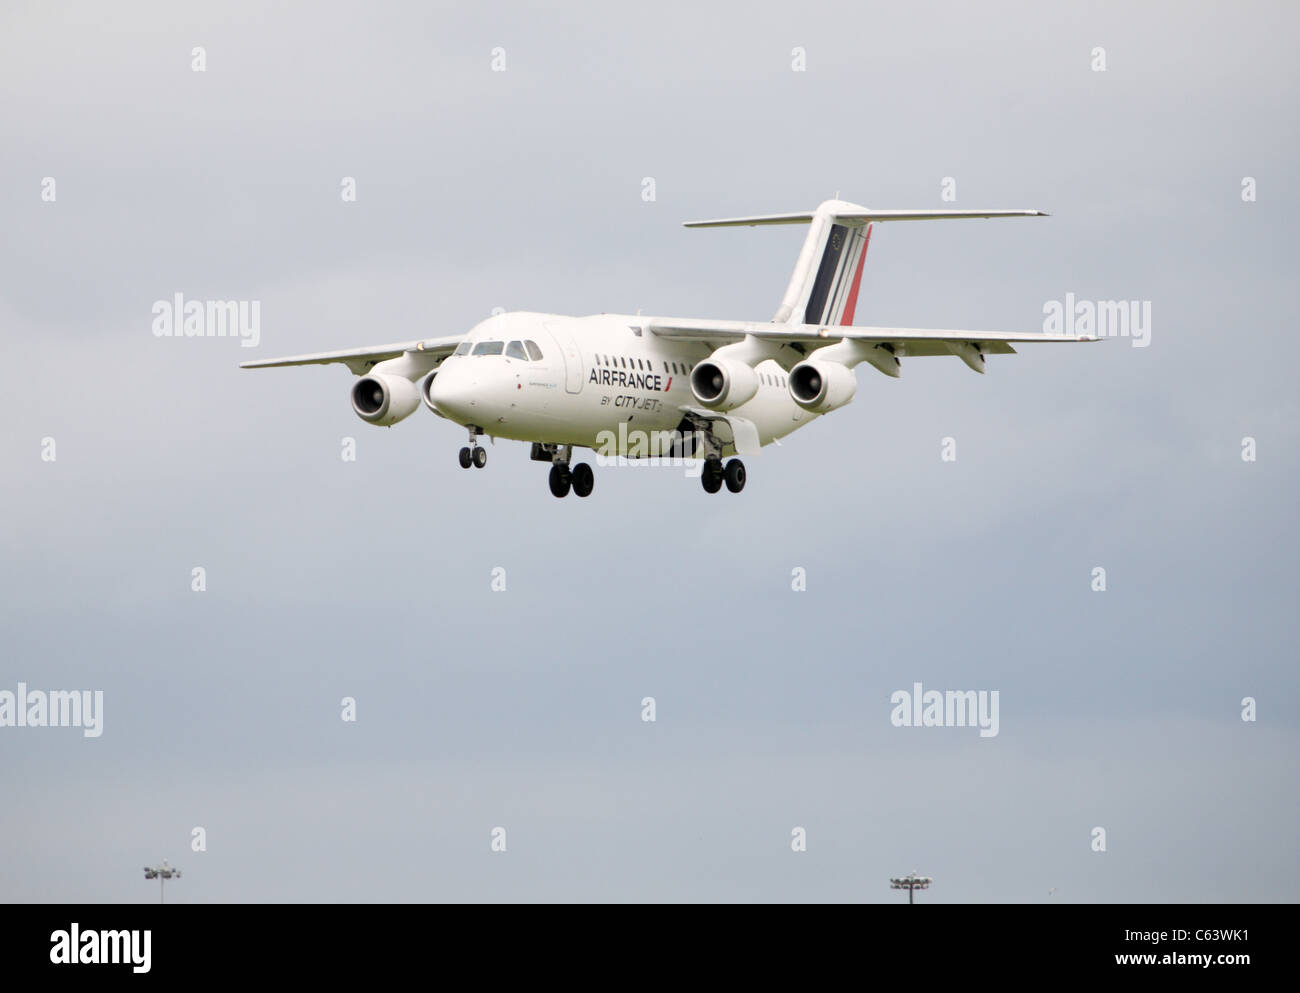 Air france city jet landing at Dublin Airport Stock Photo